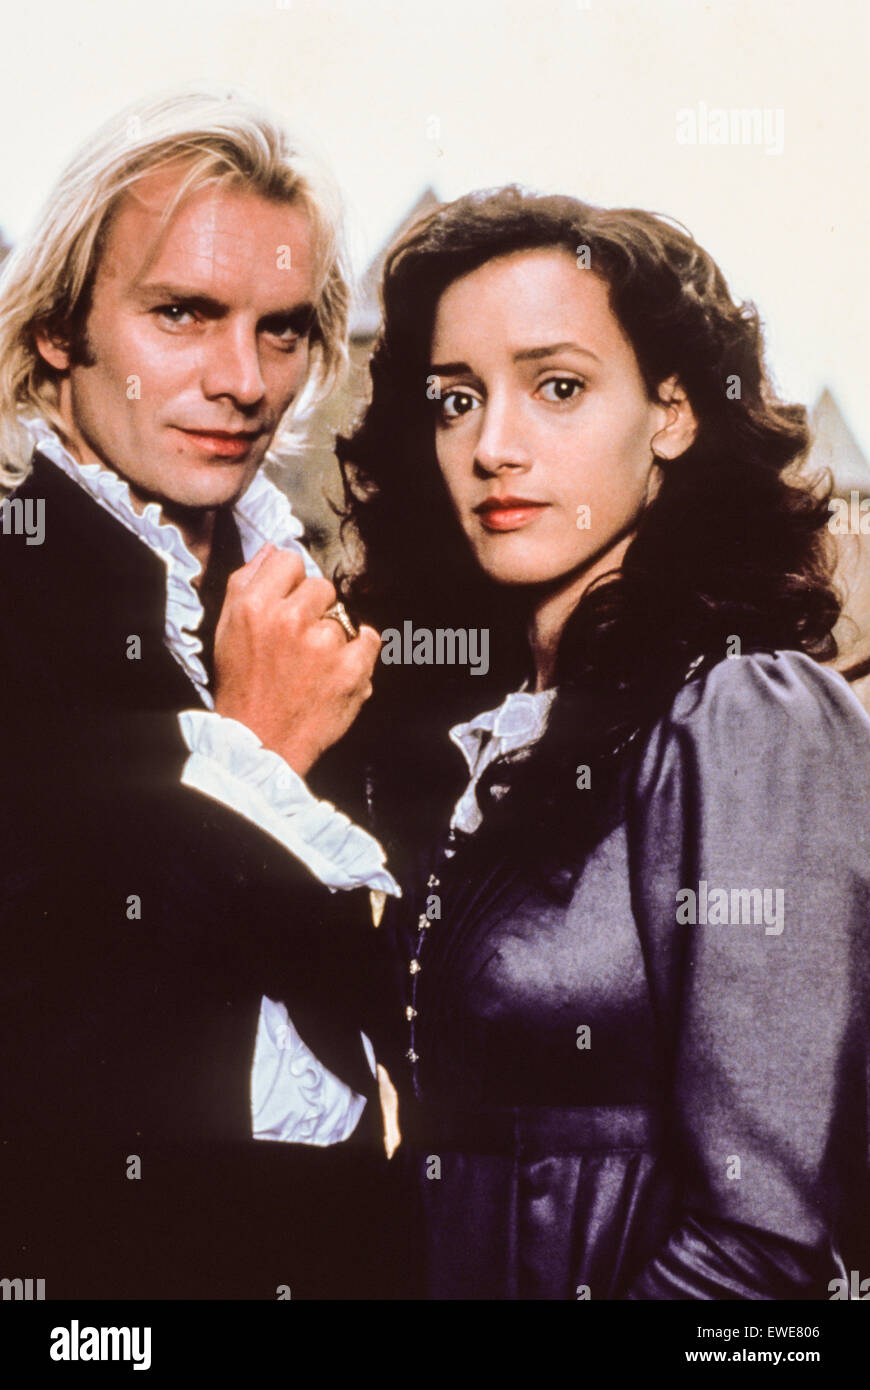 sting, jennifer beals, the bride, 1985 - Stock Image